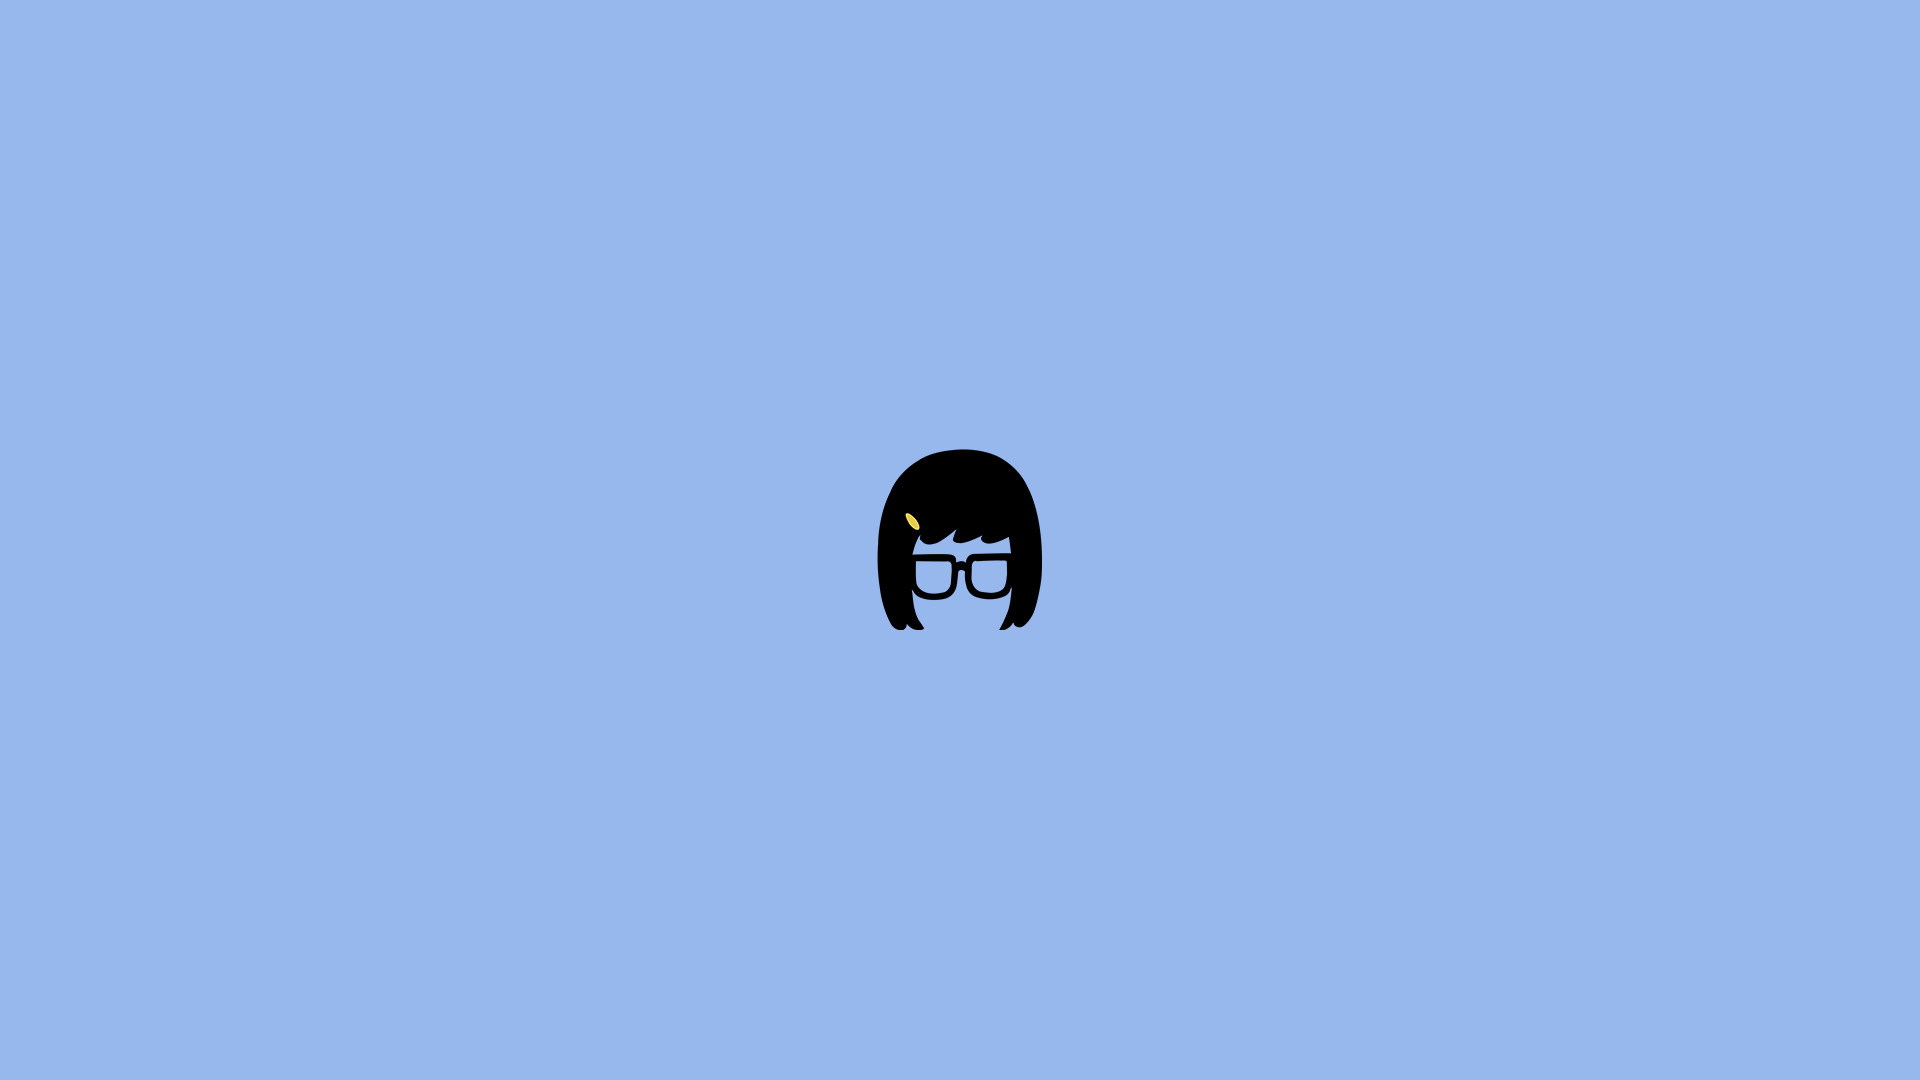 Tina. I couldn't find any Bob's Burgers wallpapers …